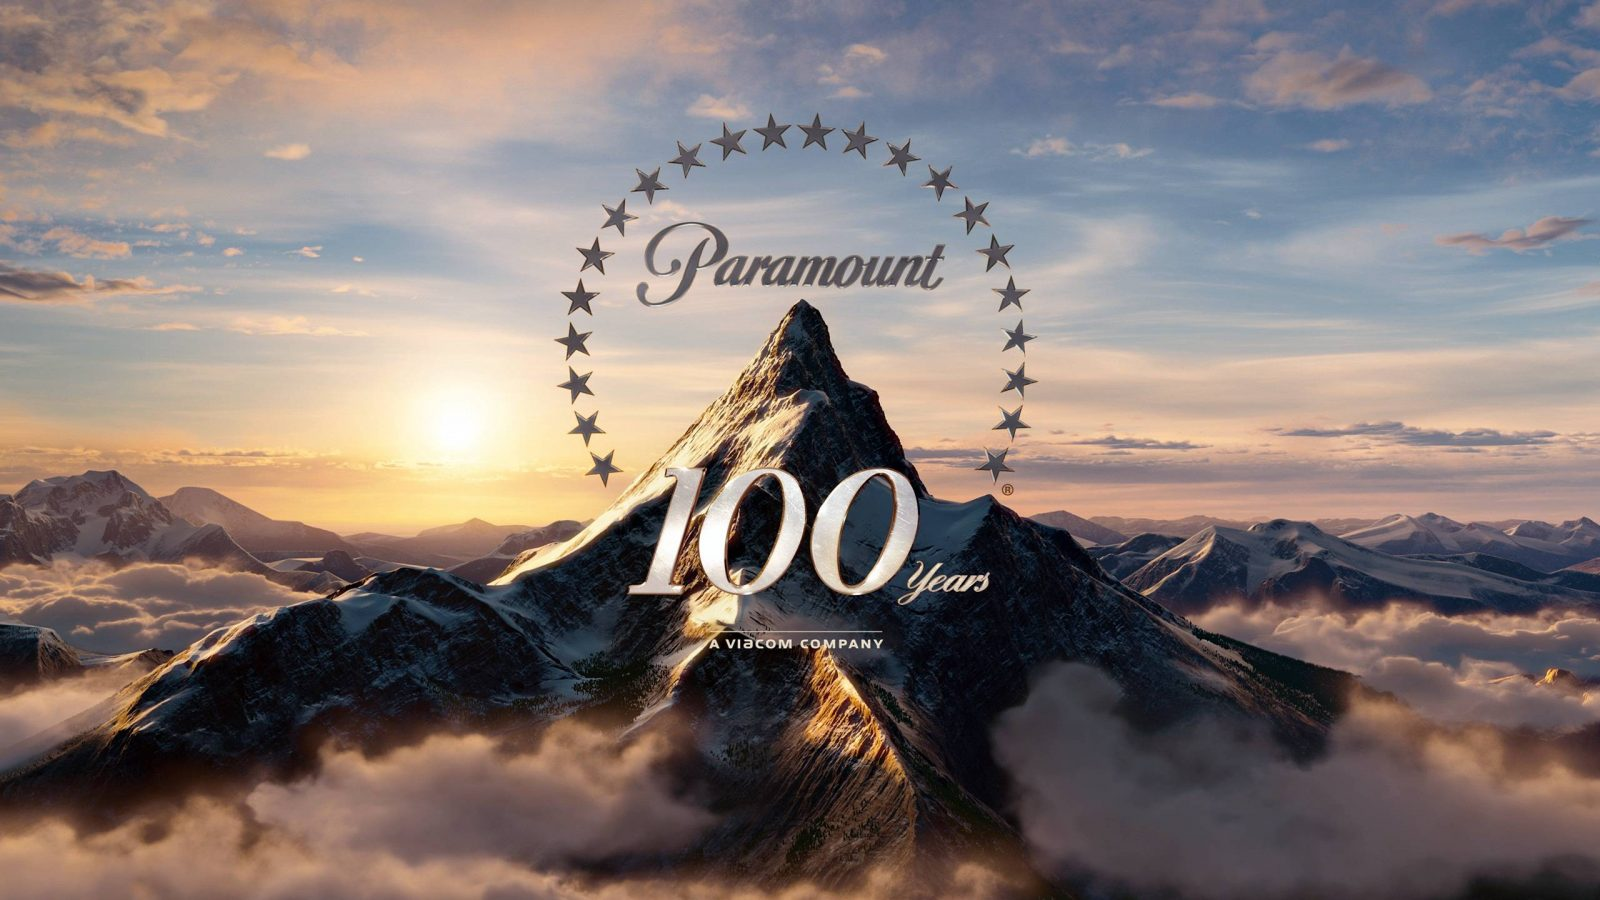 Paramount Pictures 100 Years - HD Wallpaper